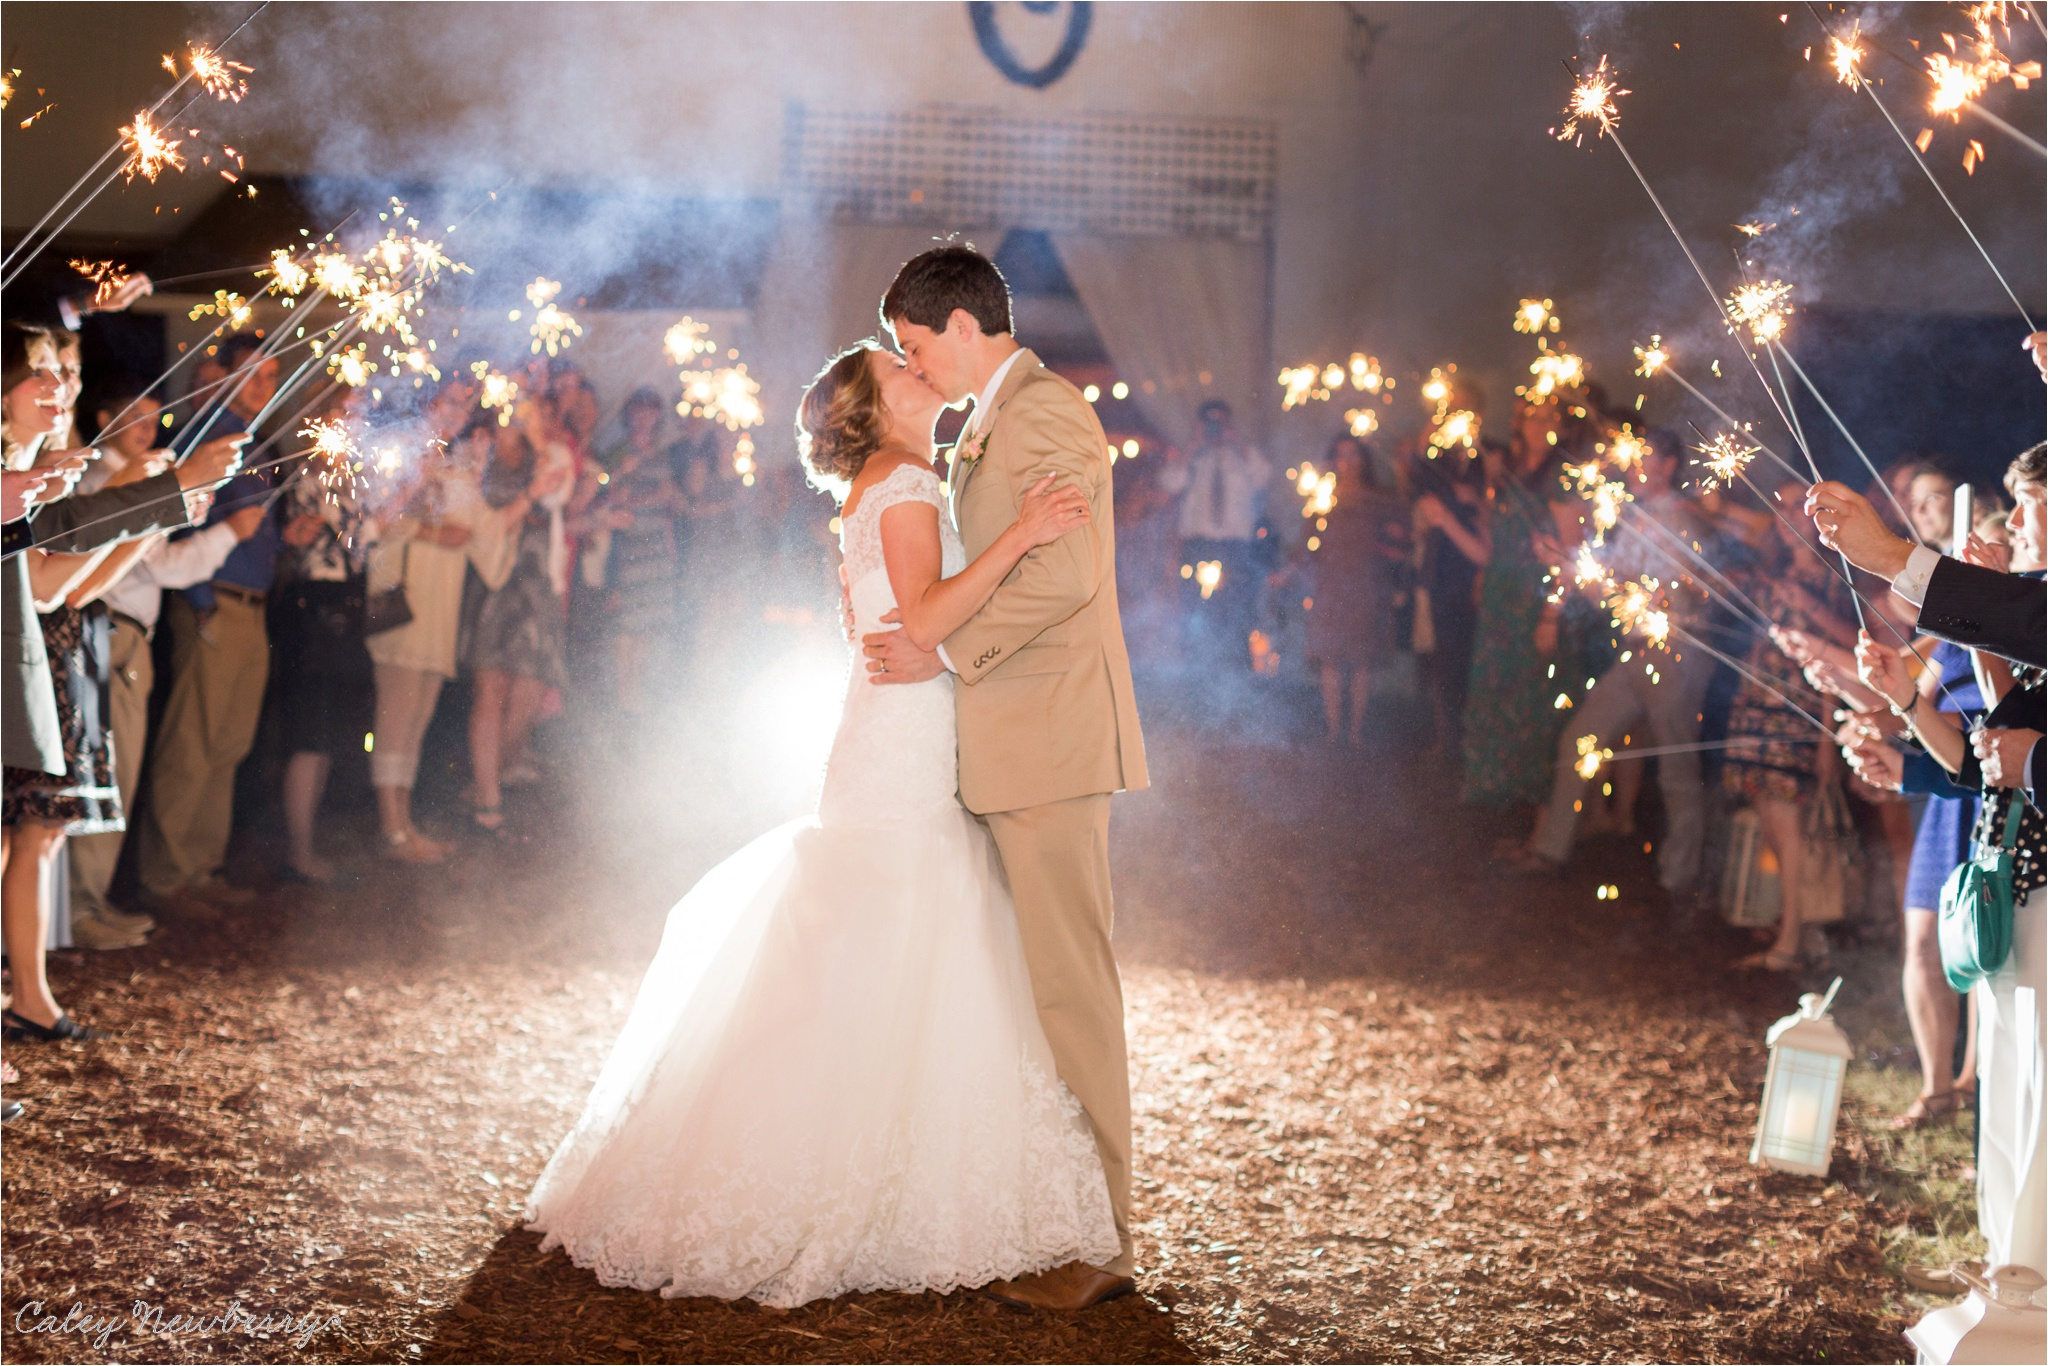 wedding-exit-sparkler-photos.jpg